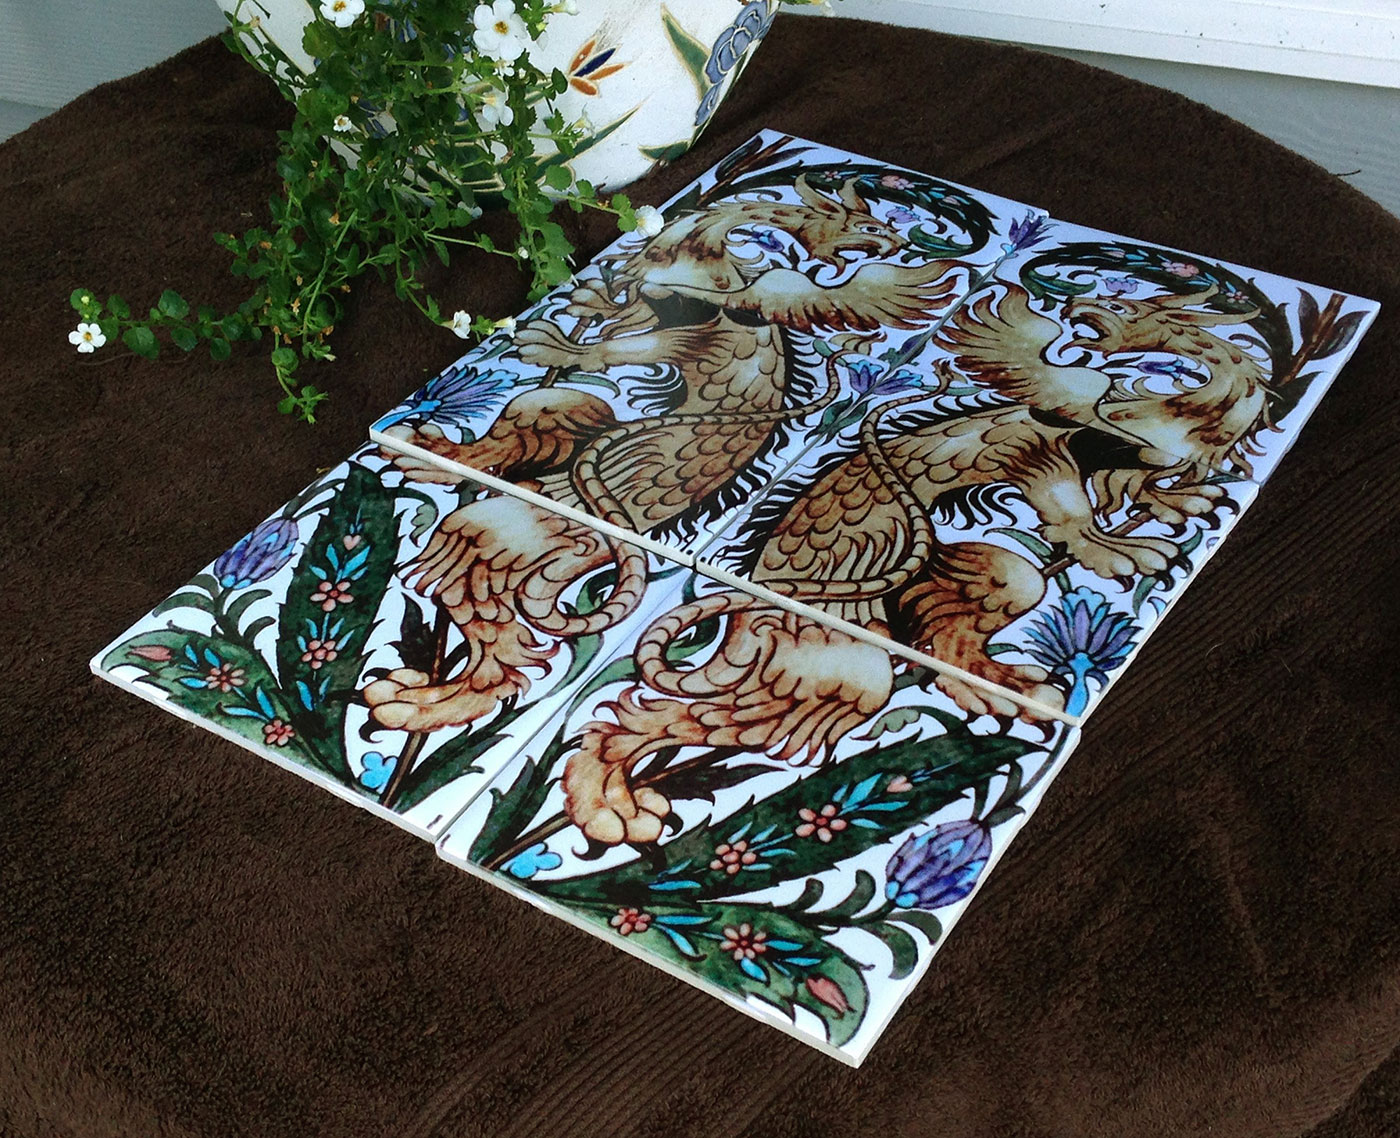 William De Morgan reproduction gryphons on eight-inch tiles, Fulham period